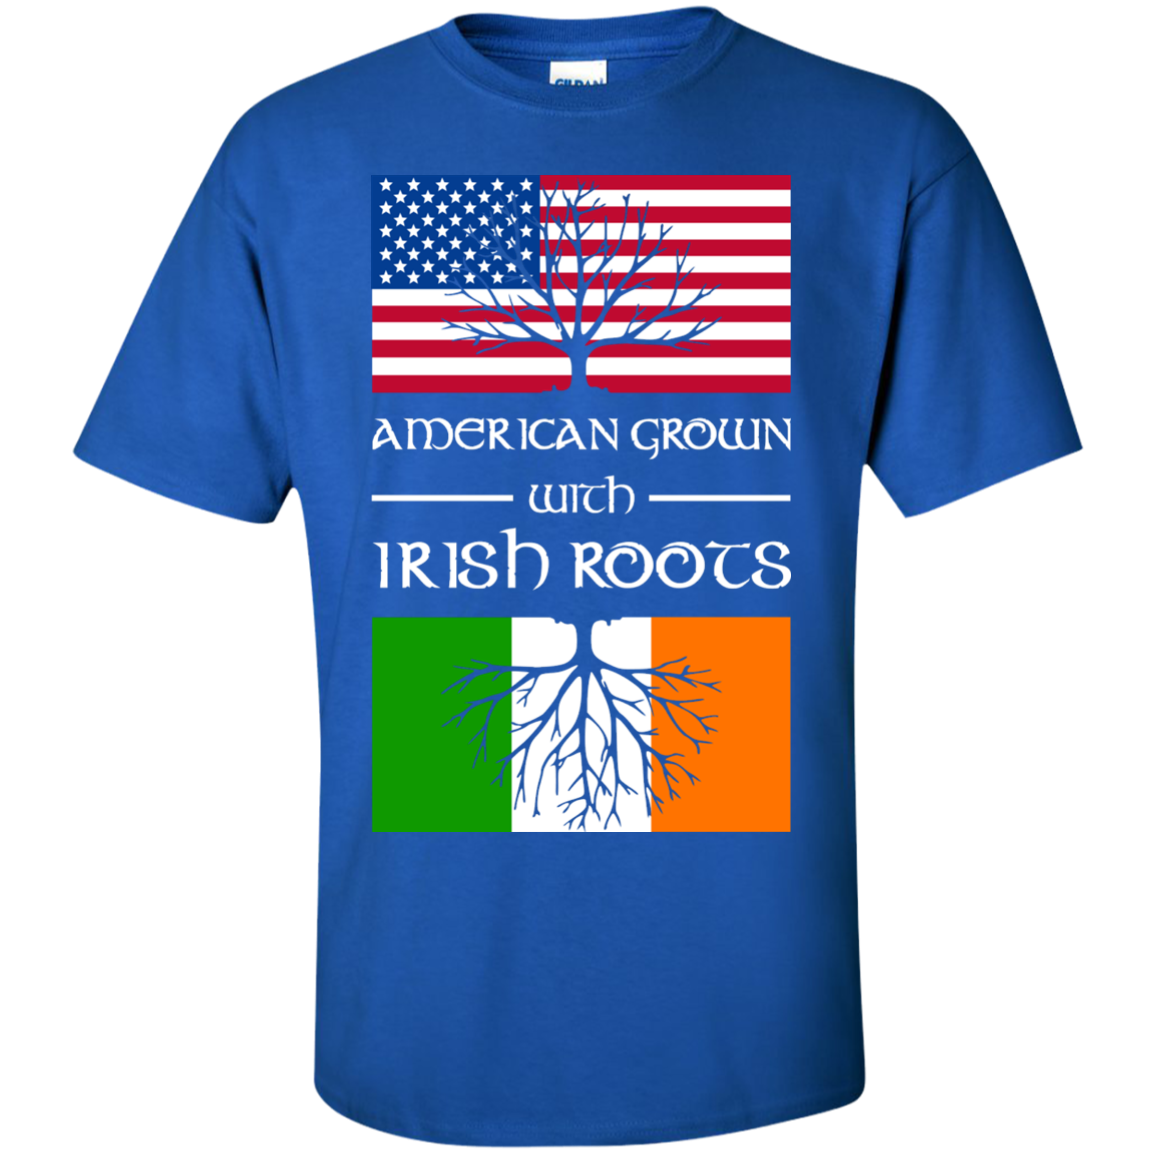 American Grown With Irish Roots T-Shirts - The Sun Cat